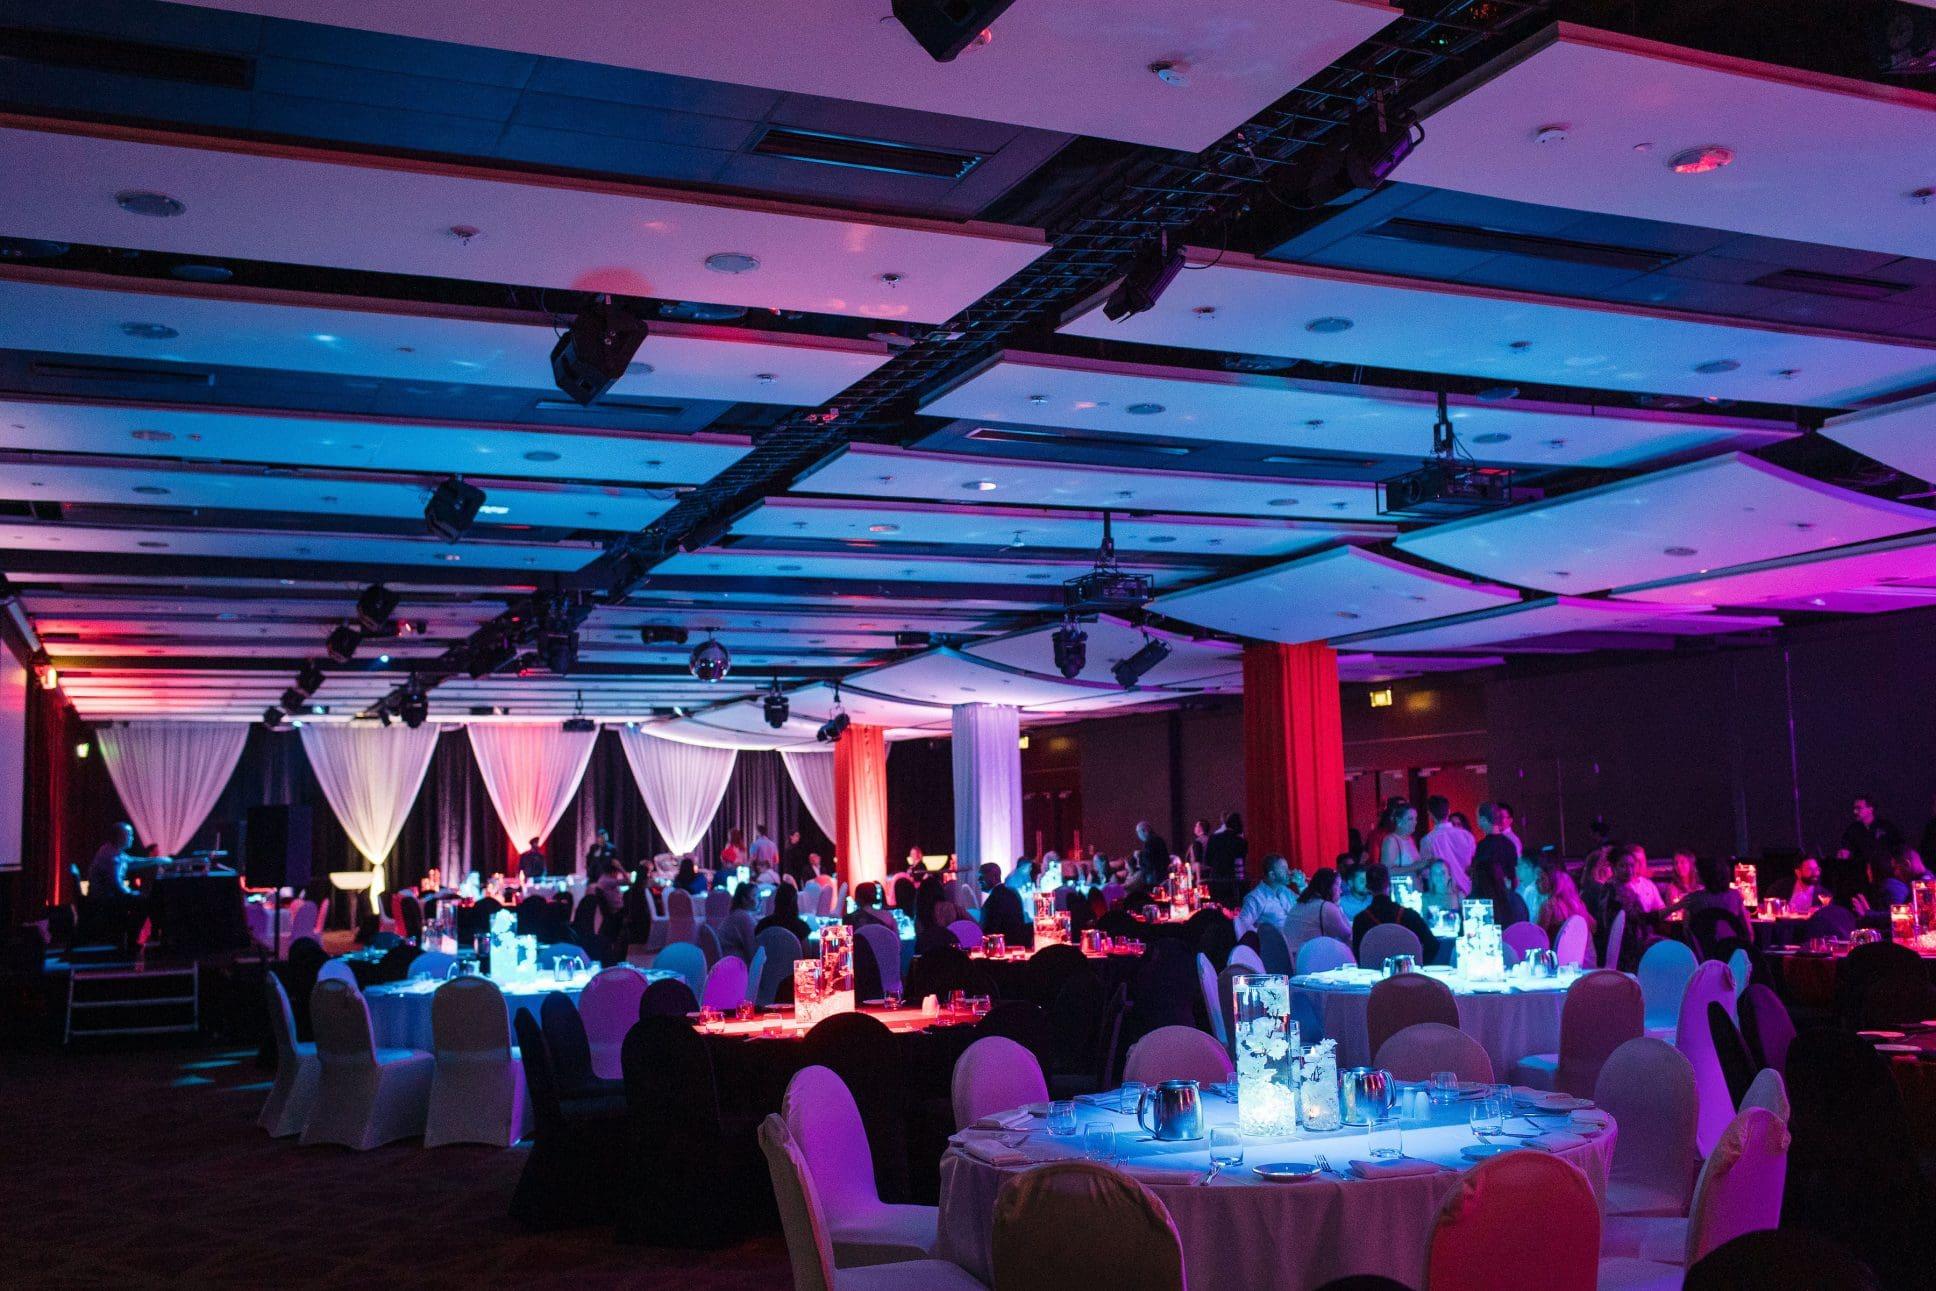 Gala-dinner event at Pullman Auckland.